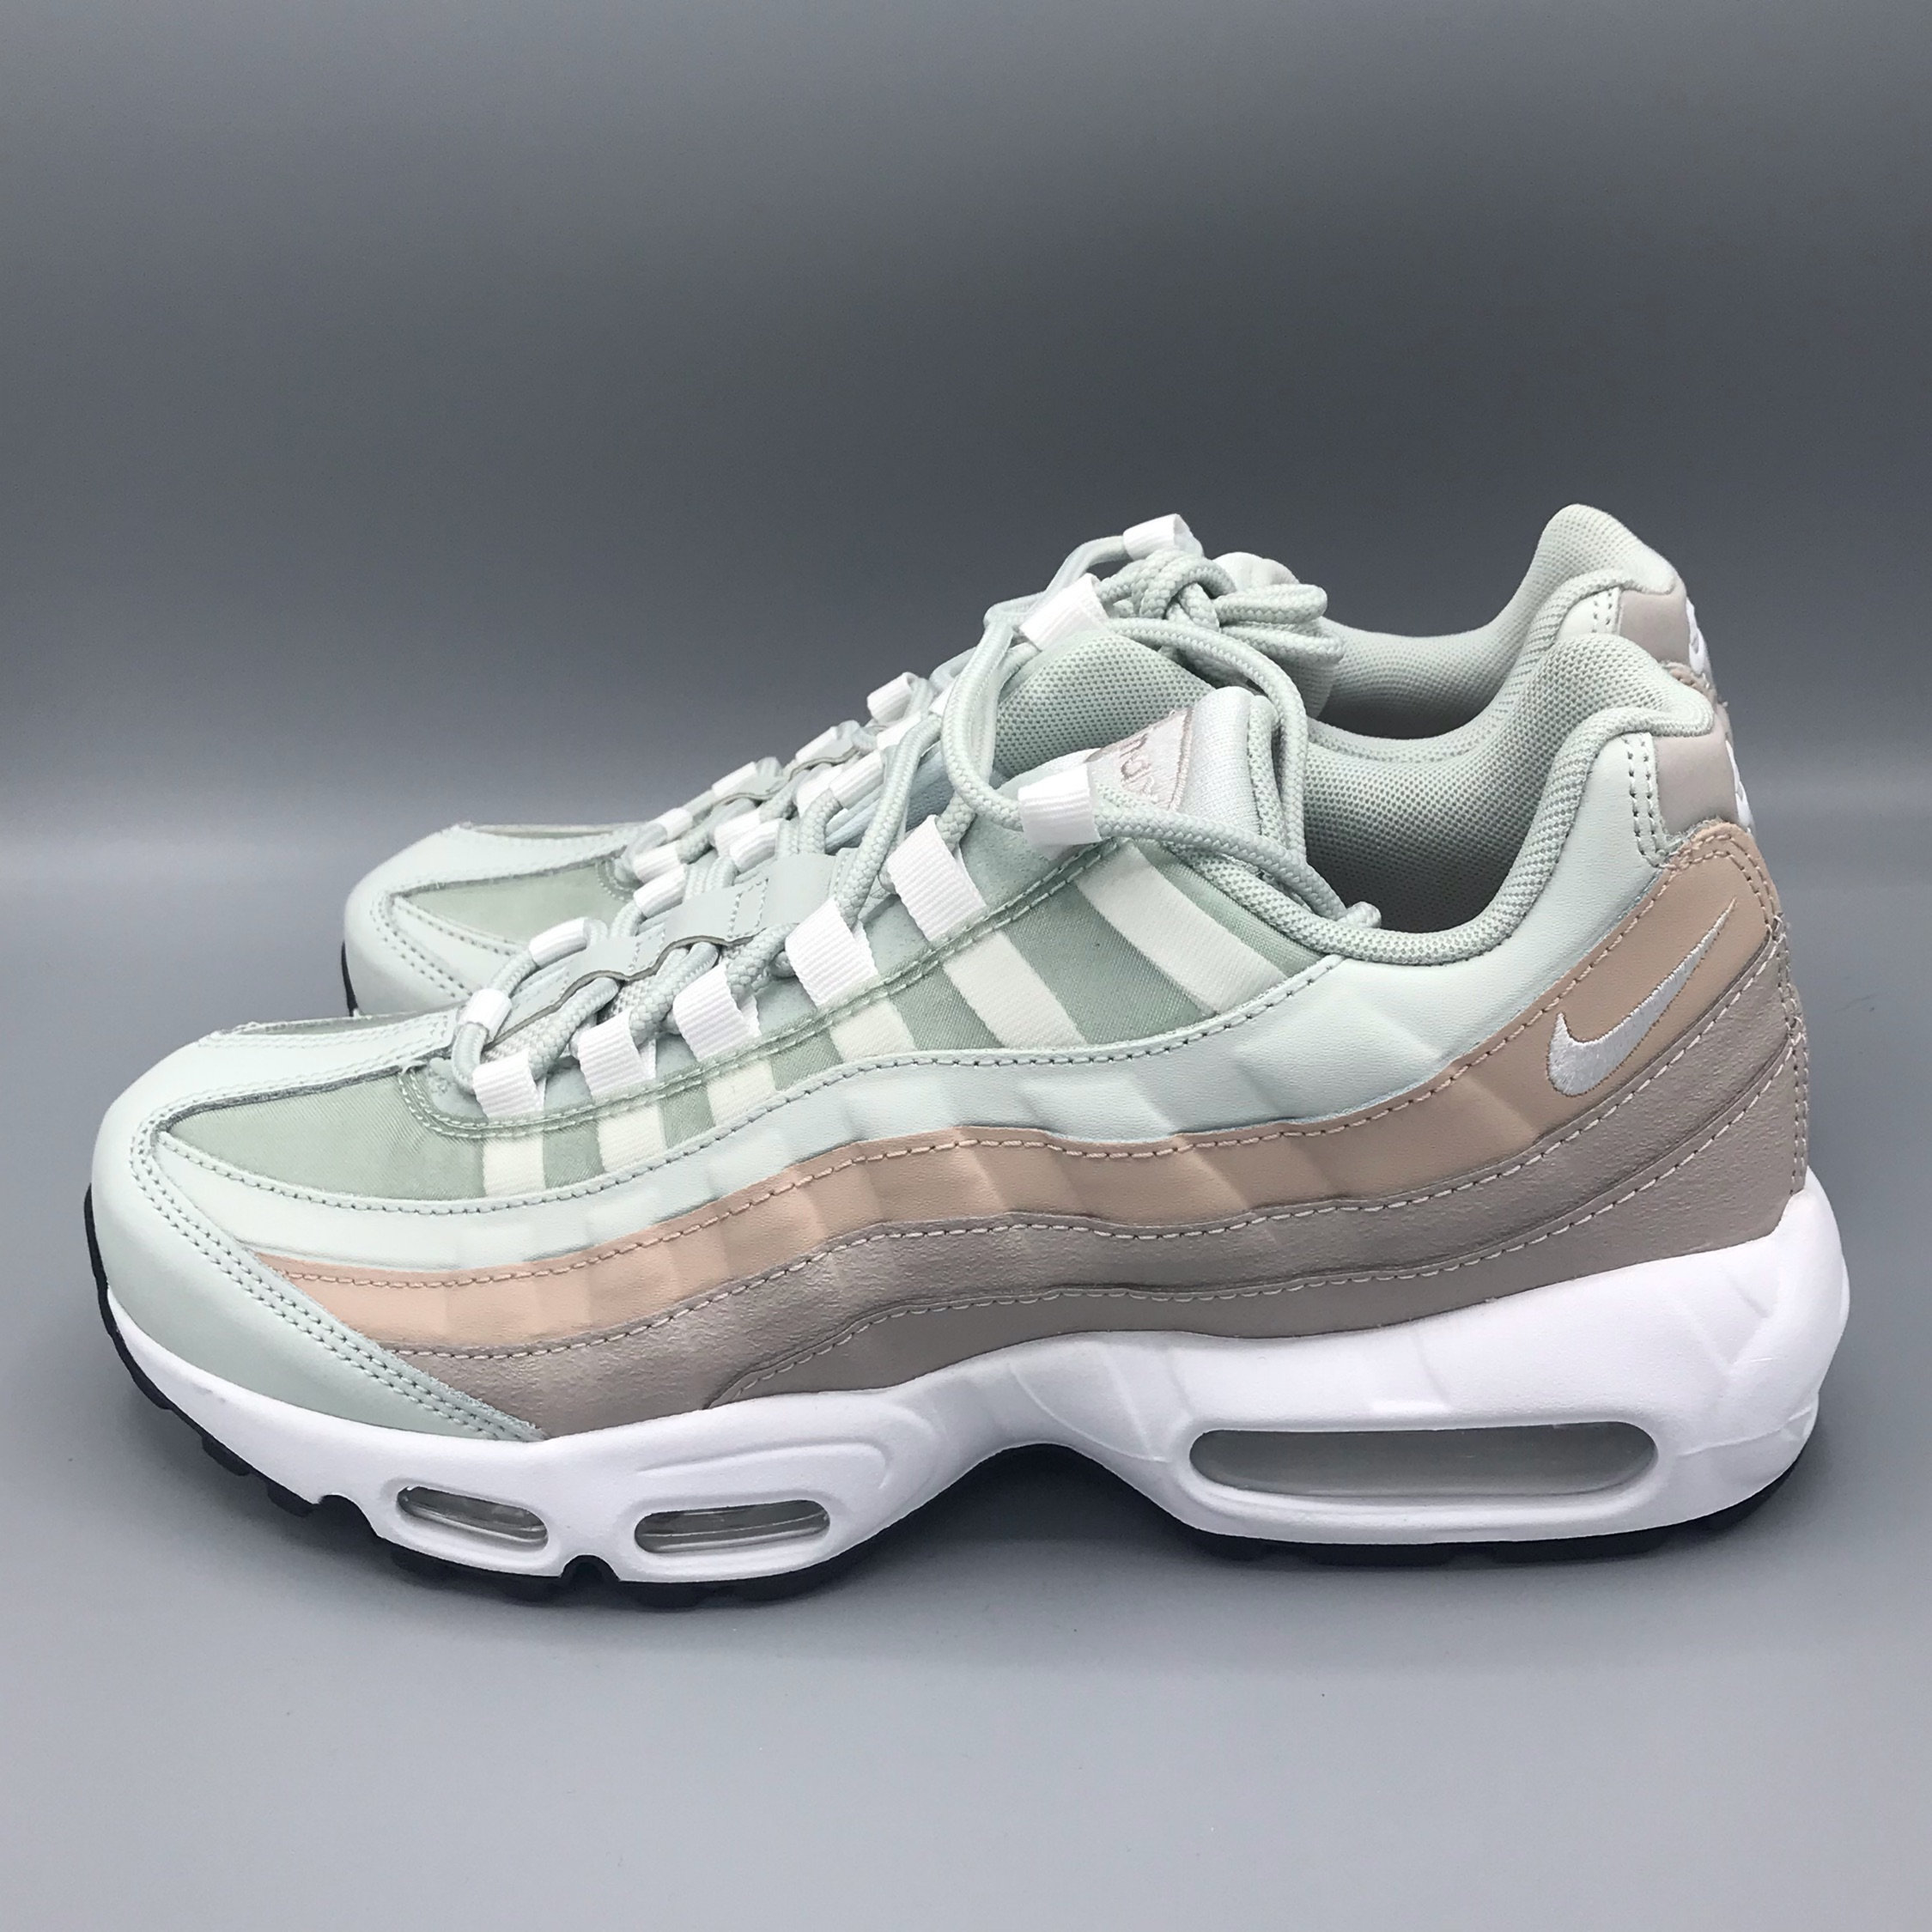 Women's Nike Air Max 95 Moon Particle Light Silver